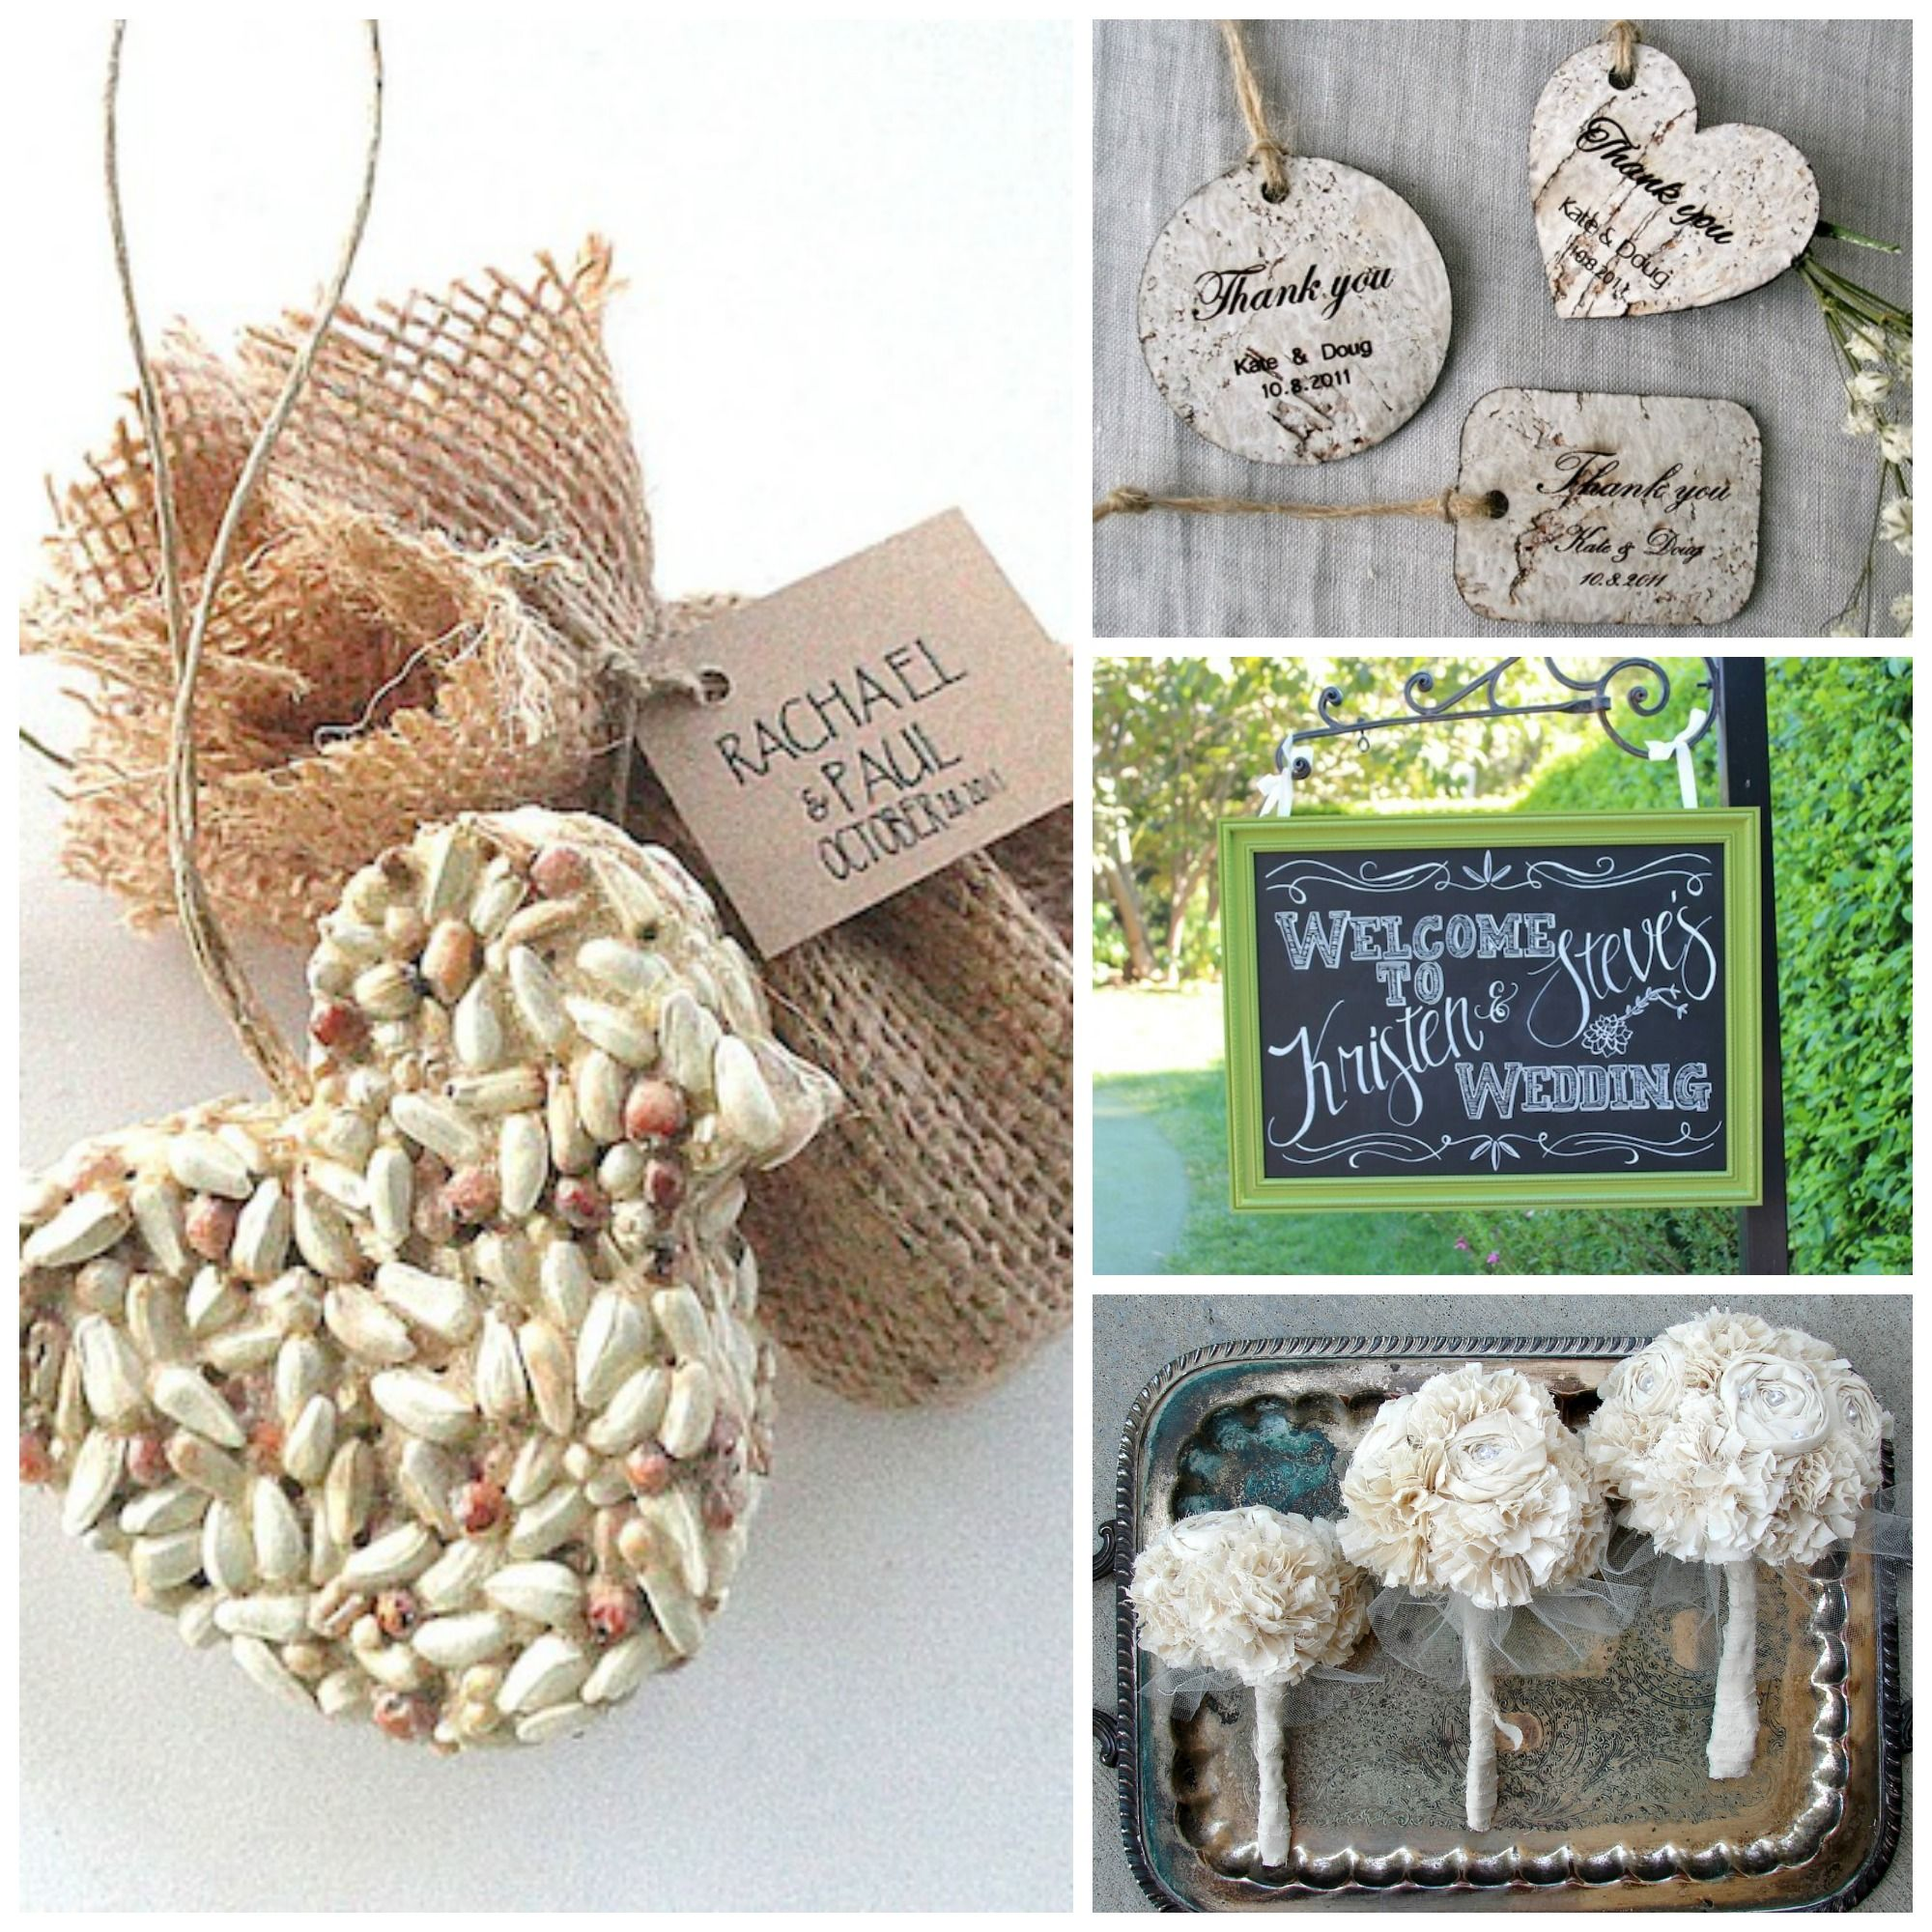 7 Websites That Have Great Wedding Favors And Accessories Http Www